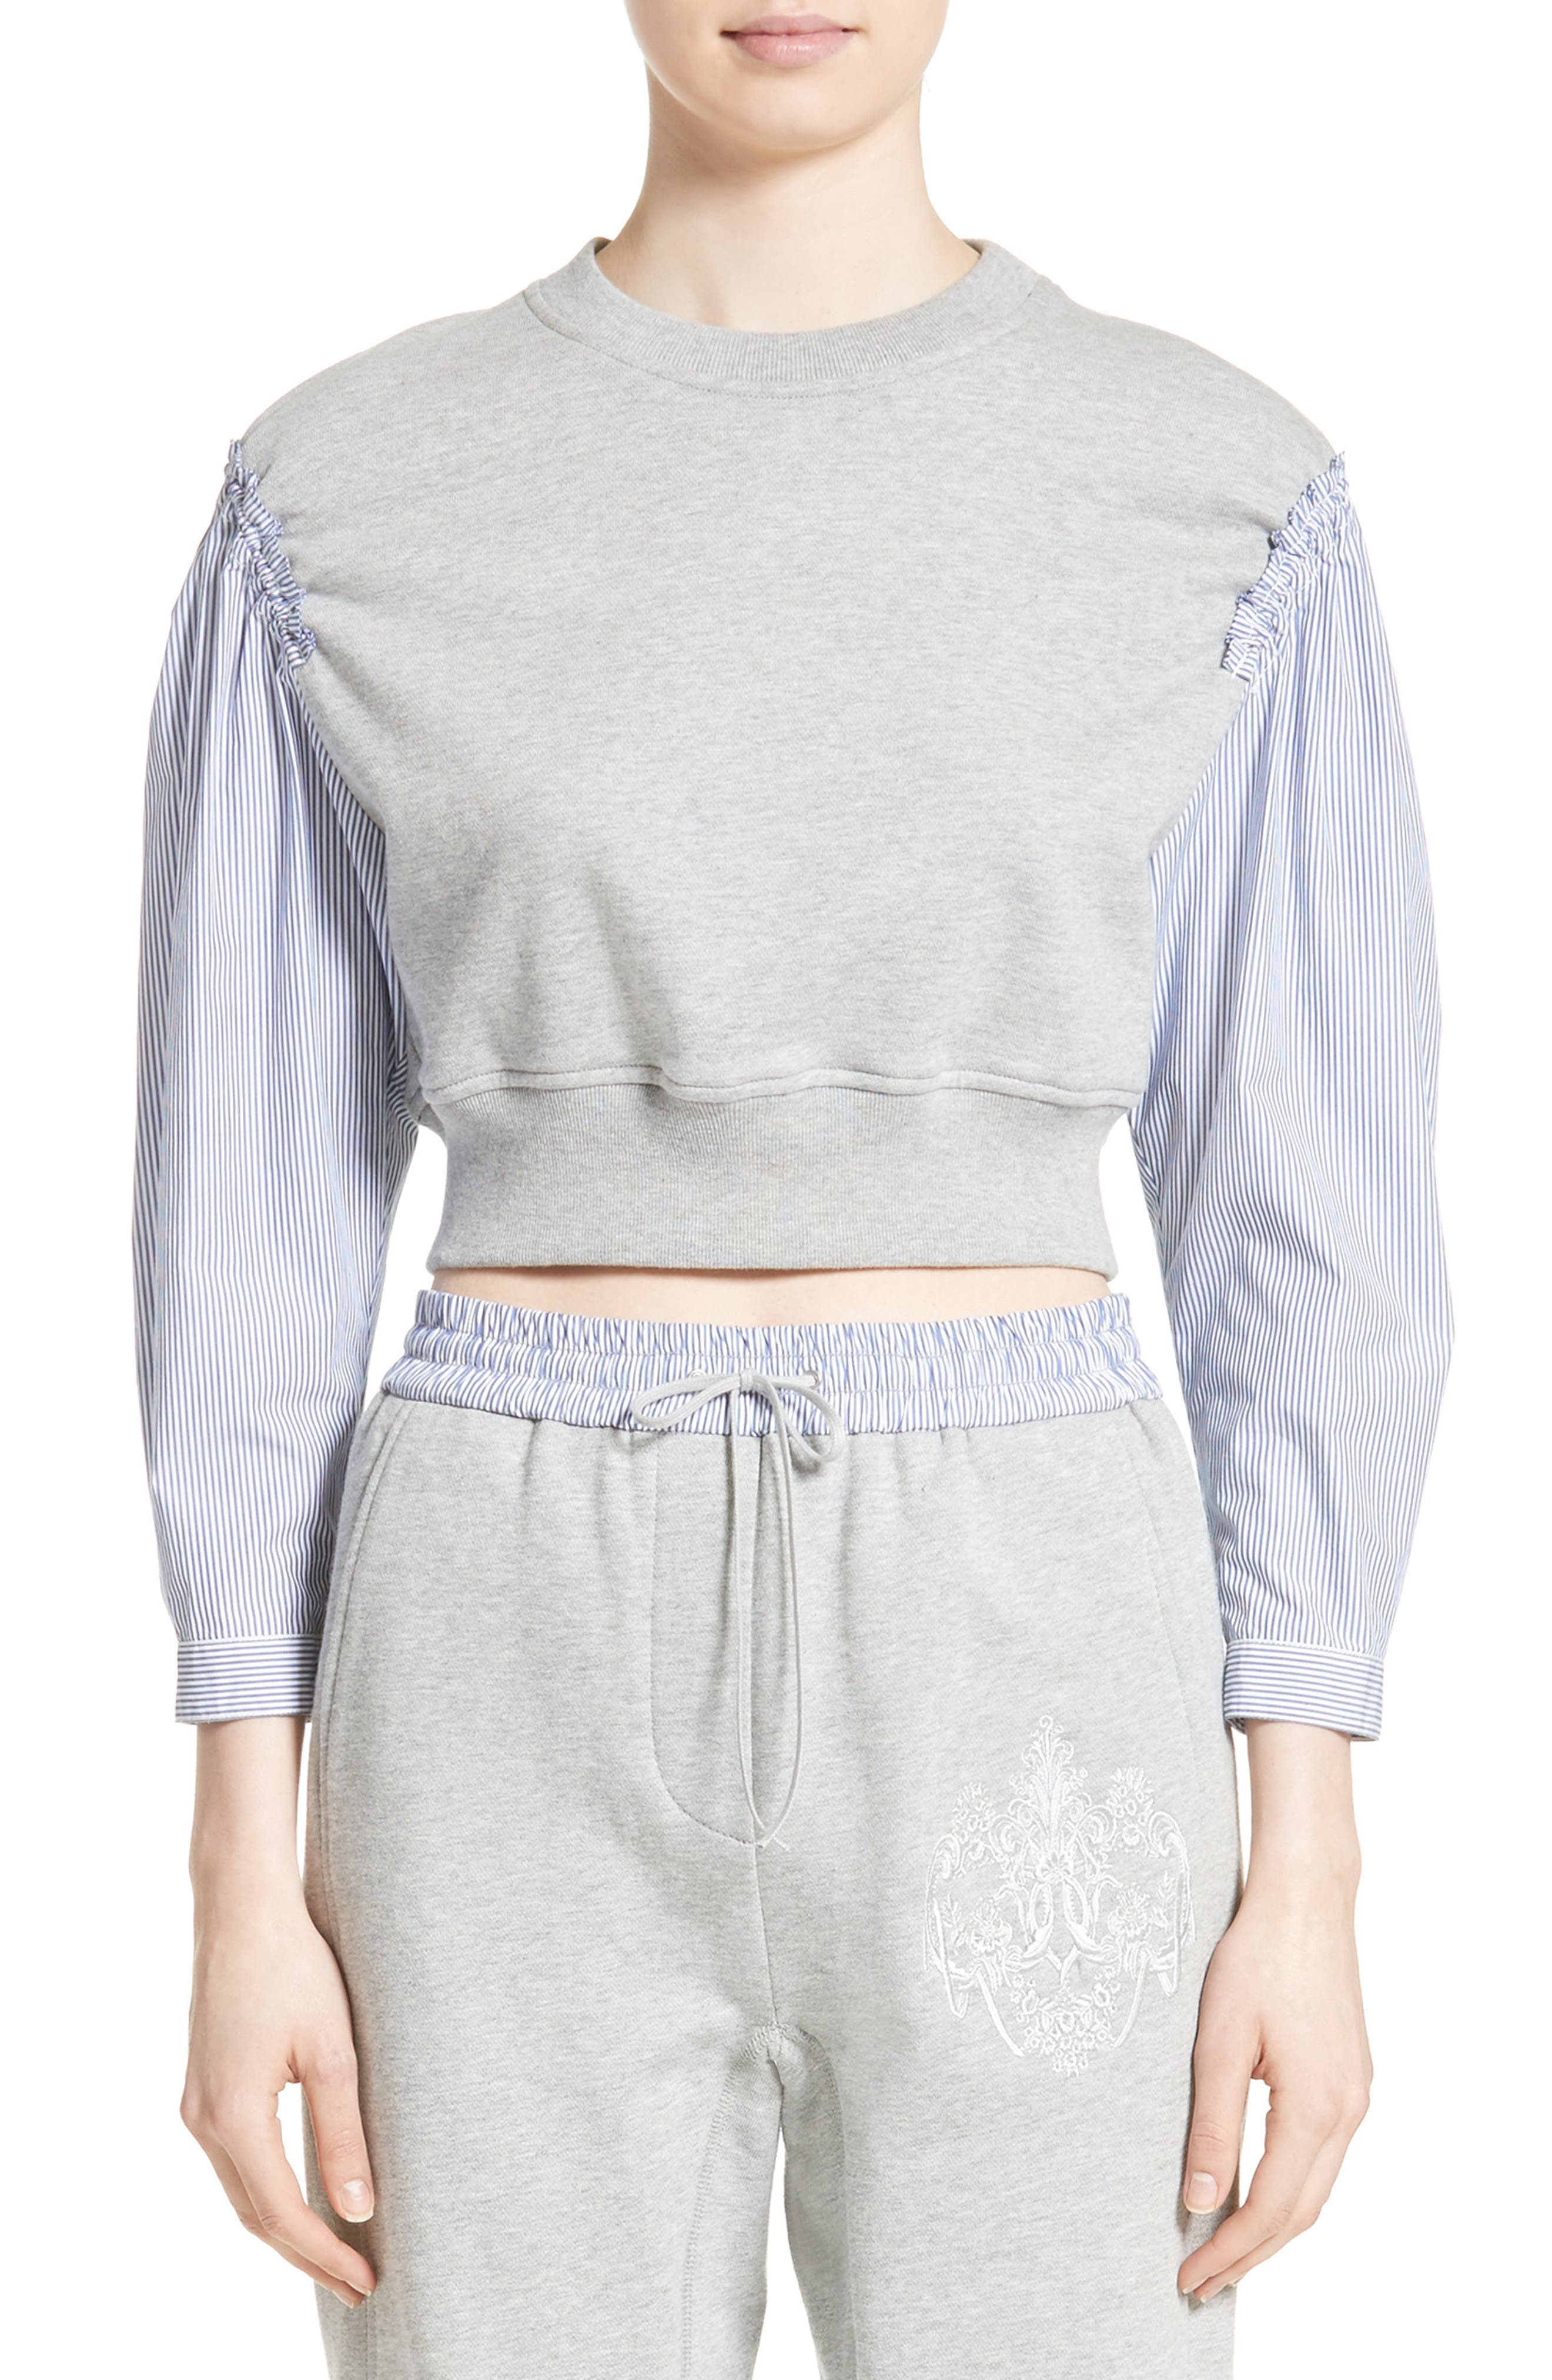 3.1 PHILLIP LIM French Terry Combo Top